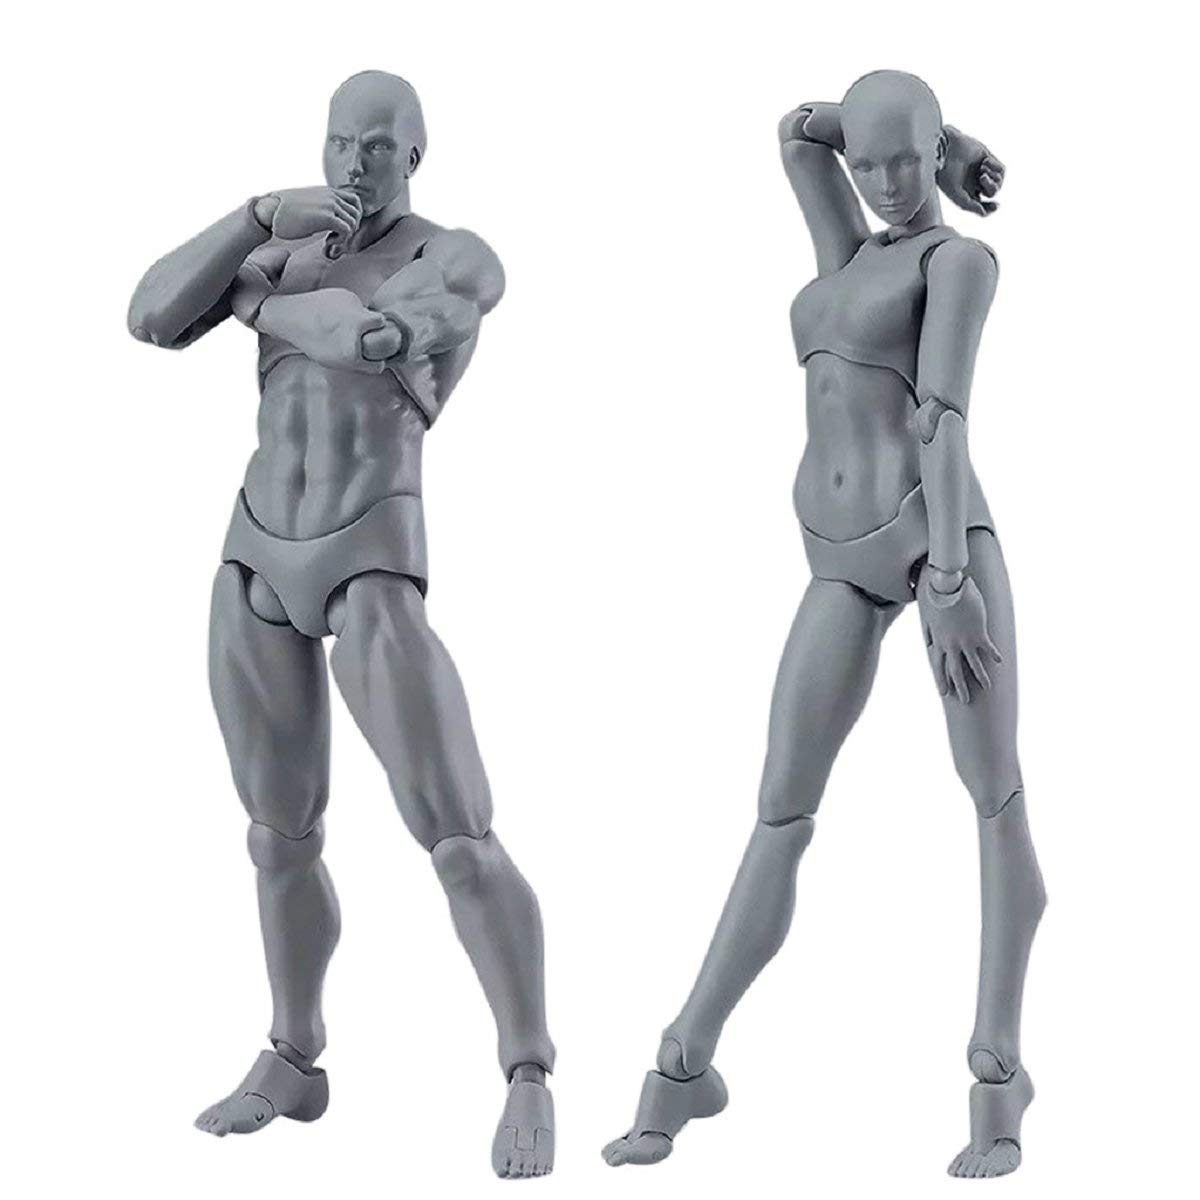 Drawing Figures Model, Putars 5D Drawing Figures for Artists Action Figure Model Human Mannequin Man andWoman Set 1 Set of Man Models + 1 Set of Woman Models